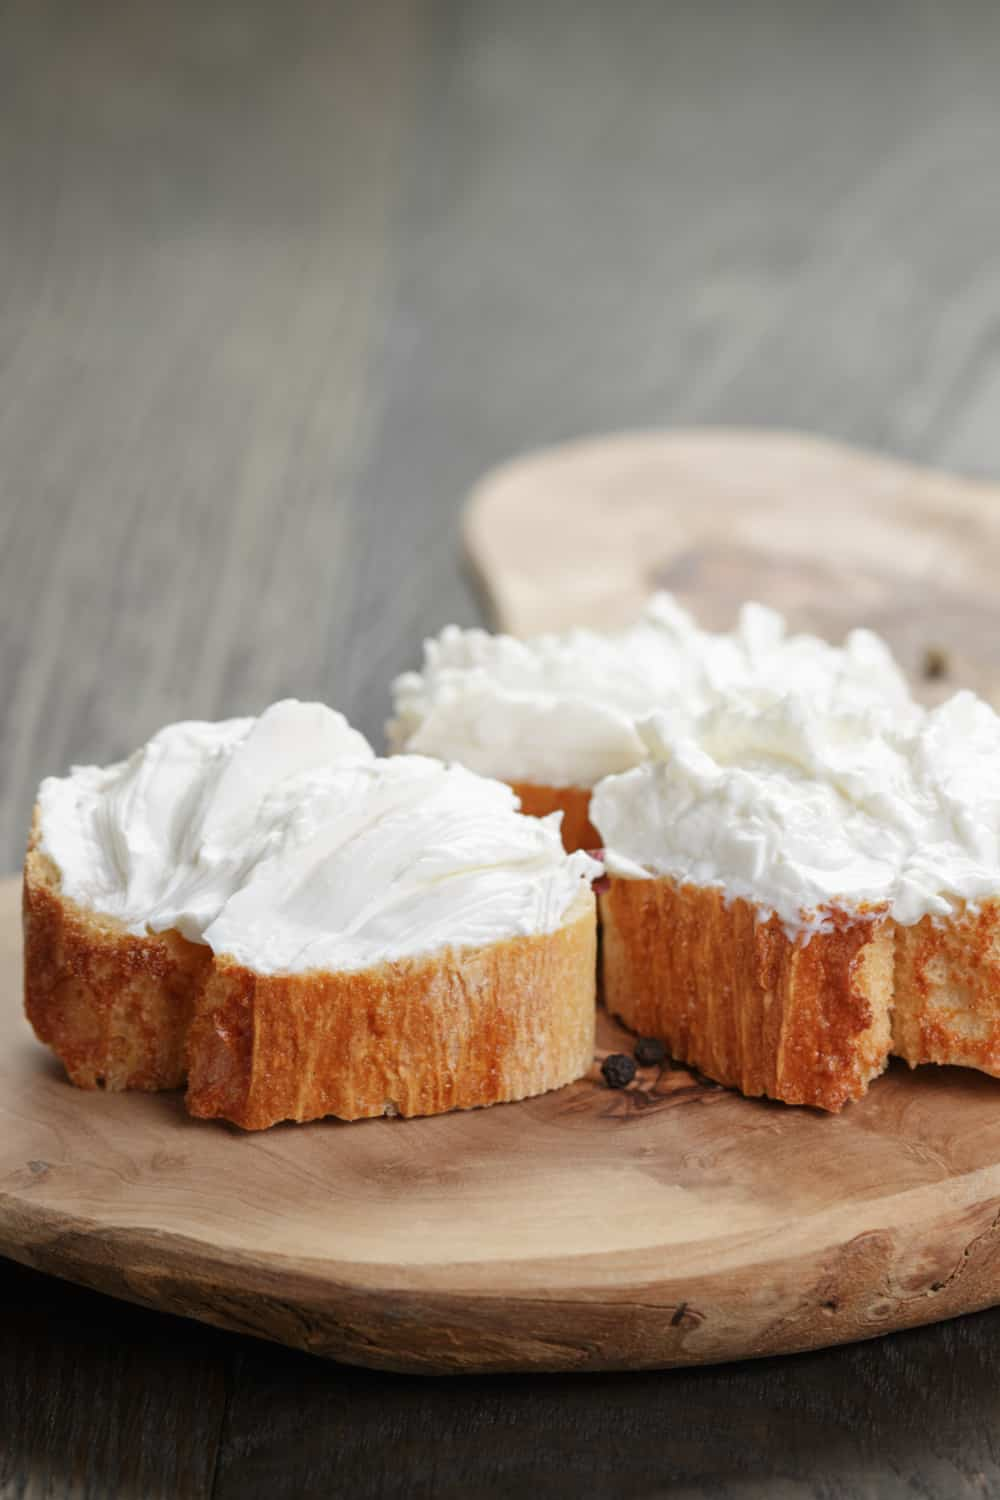 The Risk of Consuming an Expired Cream Cheese